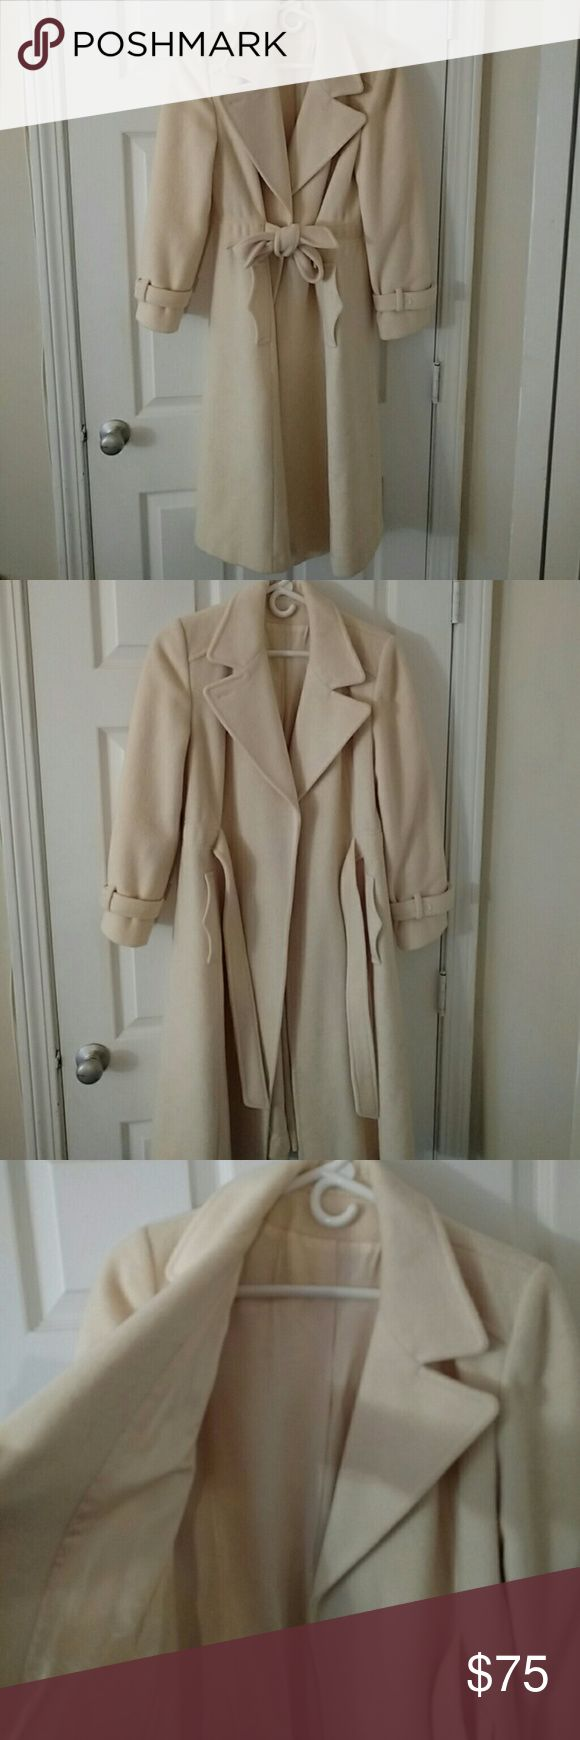 Vintage Wool Creamy Coat Beautiful vintage coat. Long enough for skirts/dresses, tie waist, two side pockets, no buttons. Right now I don't have exact measurements but I can add later. It fits me so I would say best small or medium. I'm 5'7 for length reference in pics. Also the sleeves are a bit short on me but that happens sometimes with vintage. It's 75% wool, 25% nylon. I will have to pay extra shipping on this item so please keep that in mind with your offers. Thank you. Jackets & Coats…